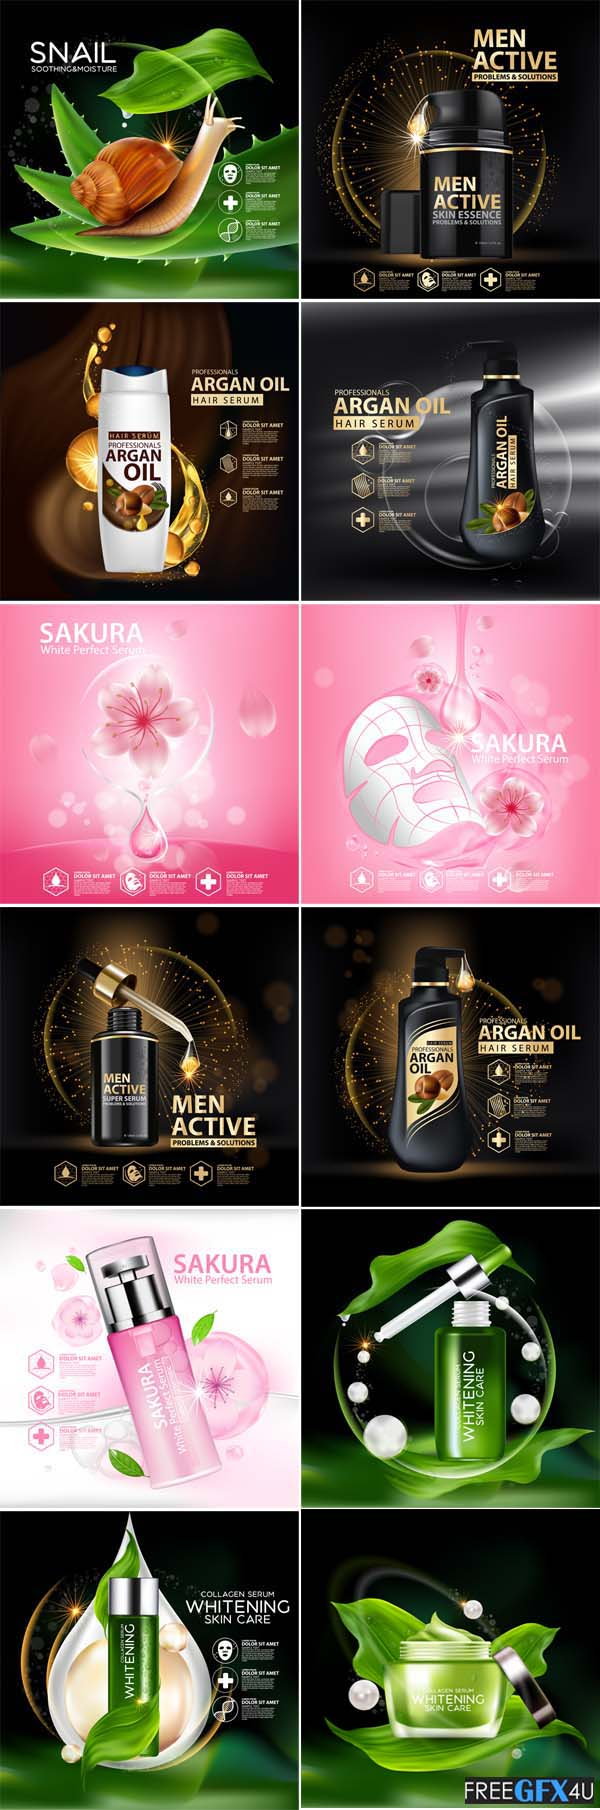 Vector Skin Care Cosmetics Advertising Designs